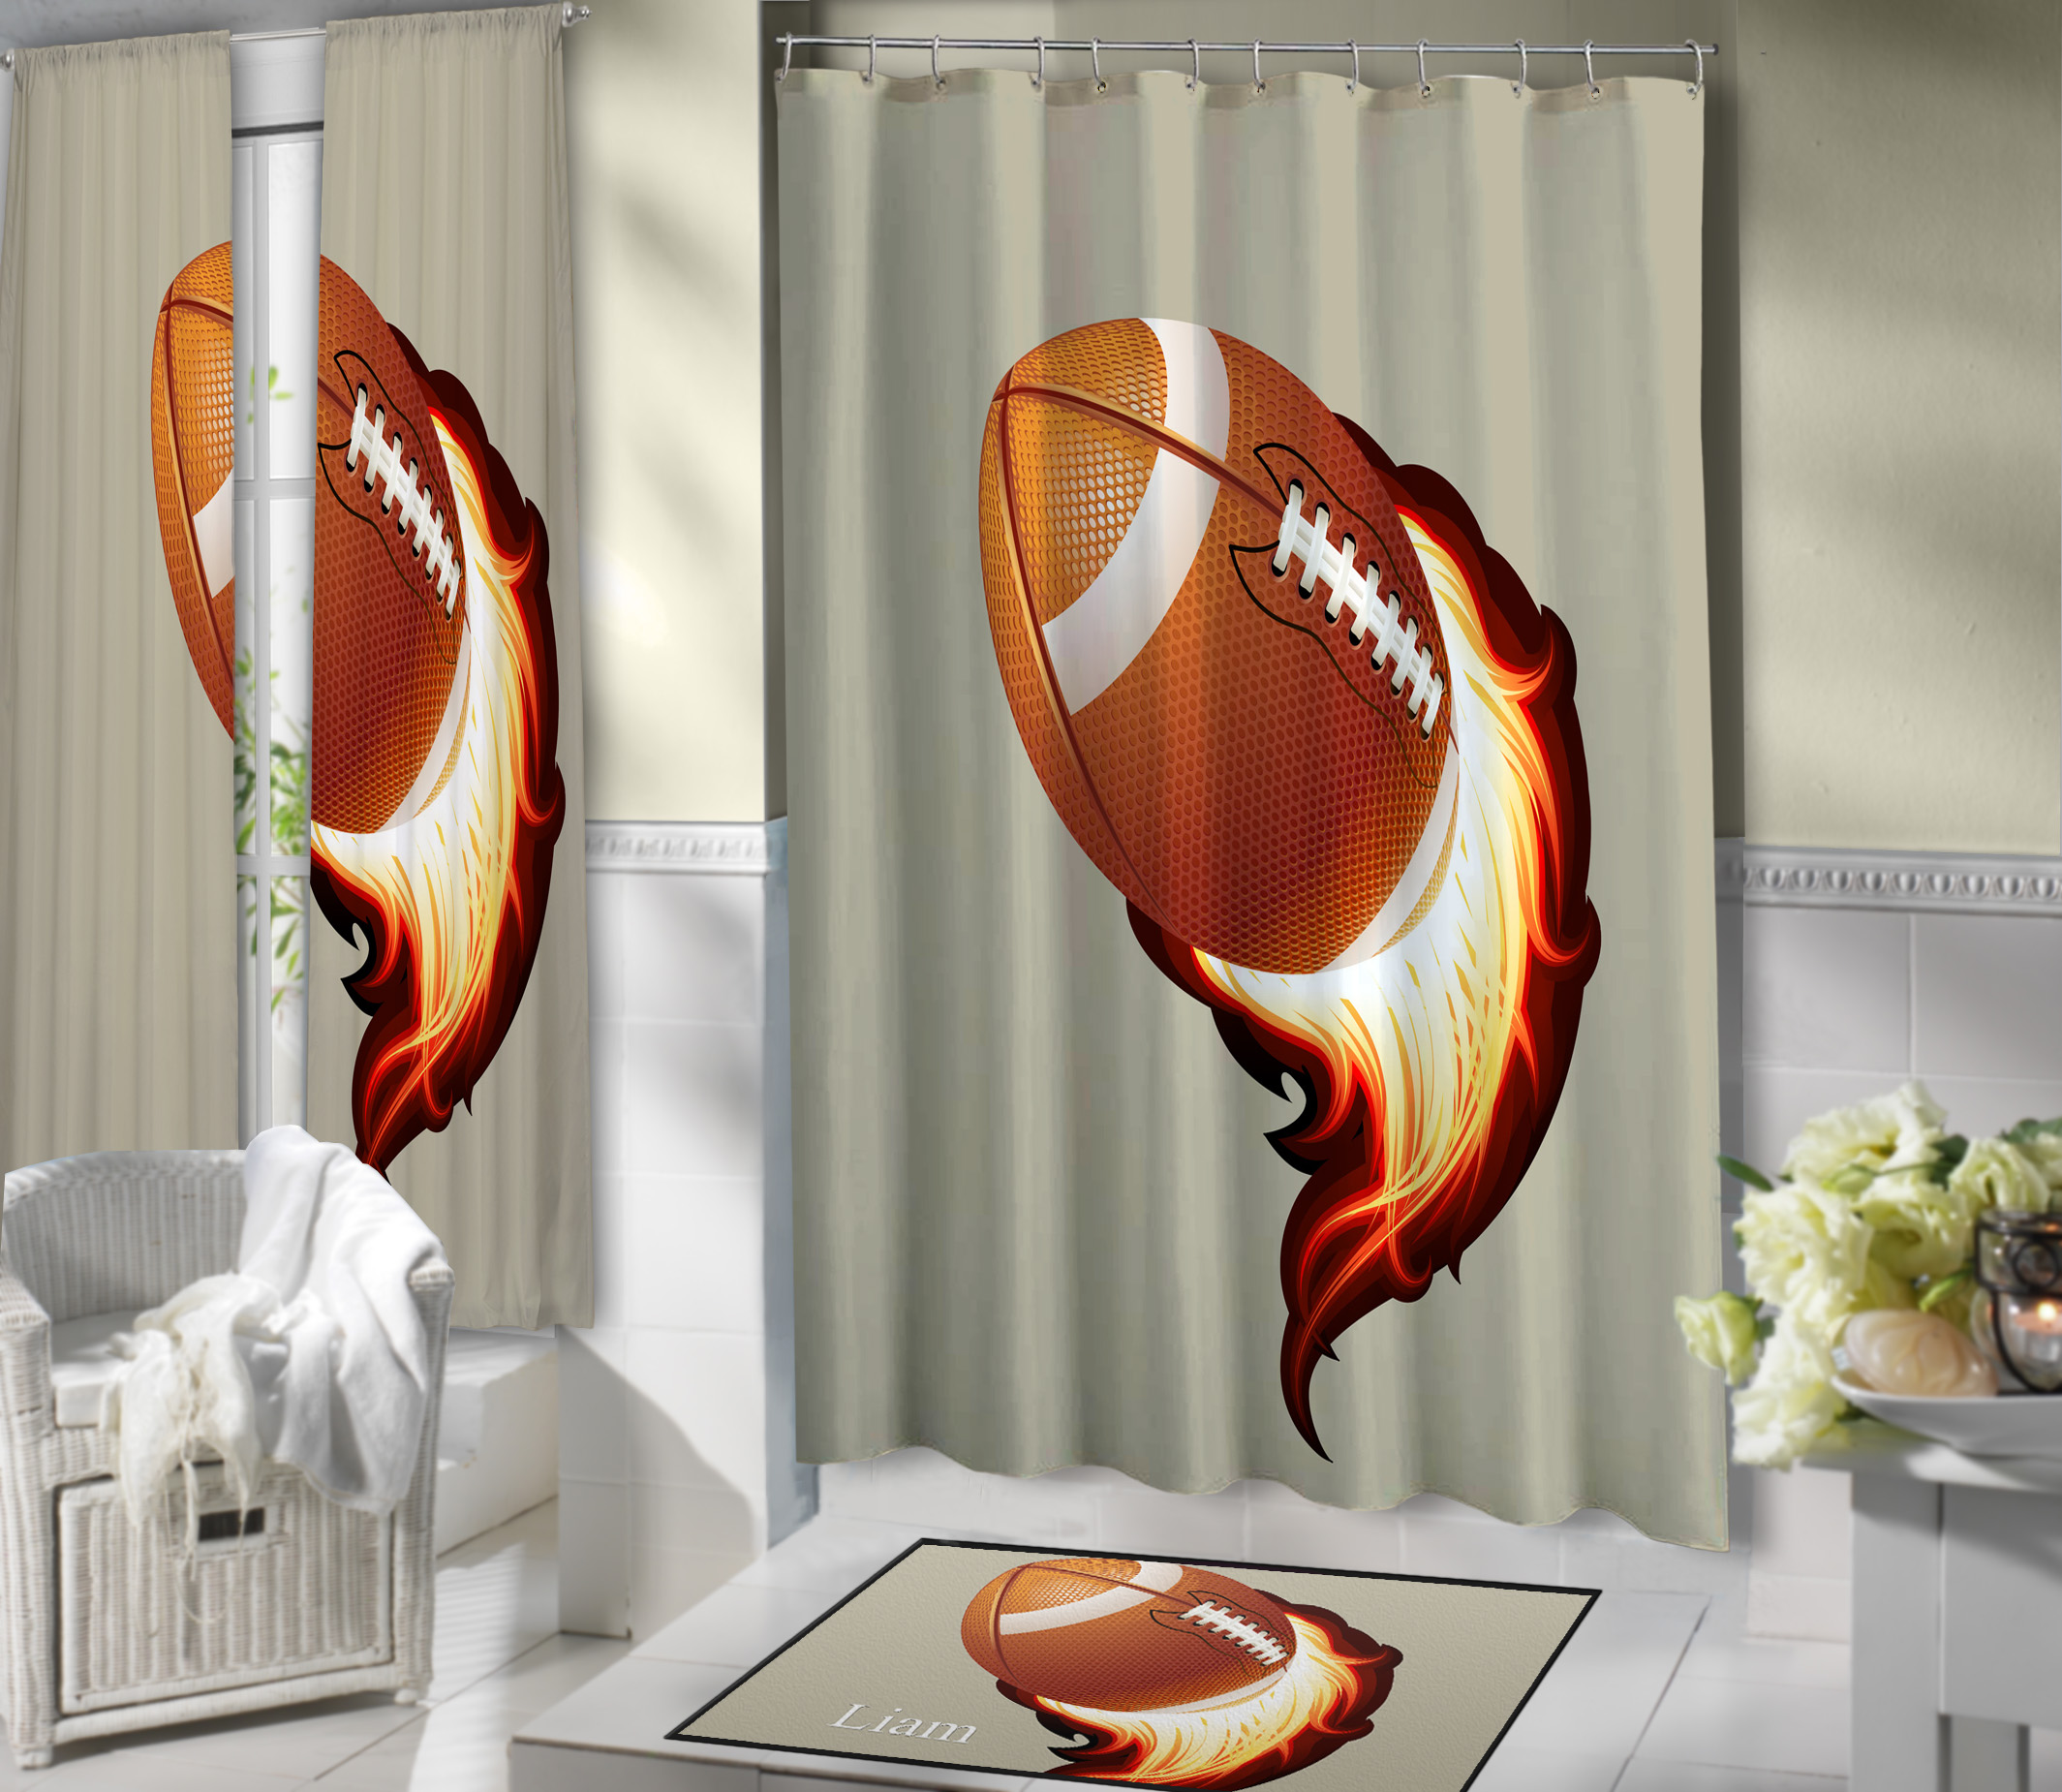 Tan Football Boys Shower Curtain For Bathroom Sport